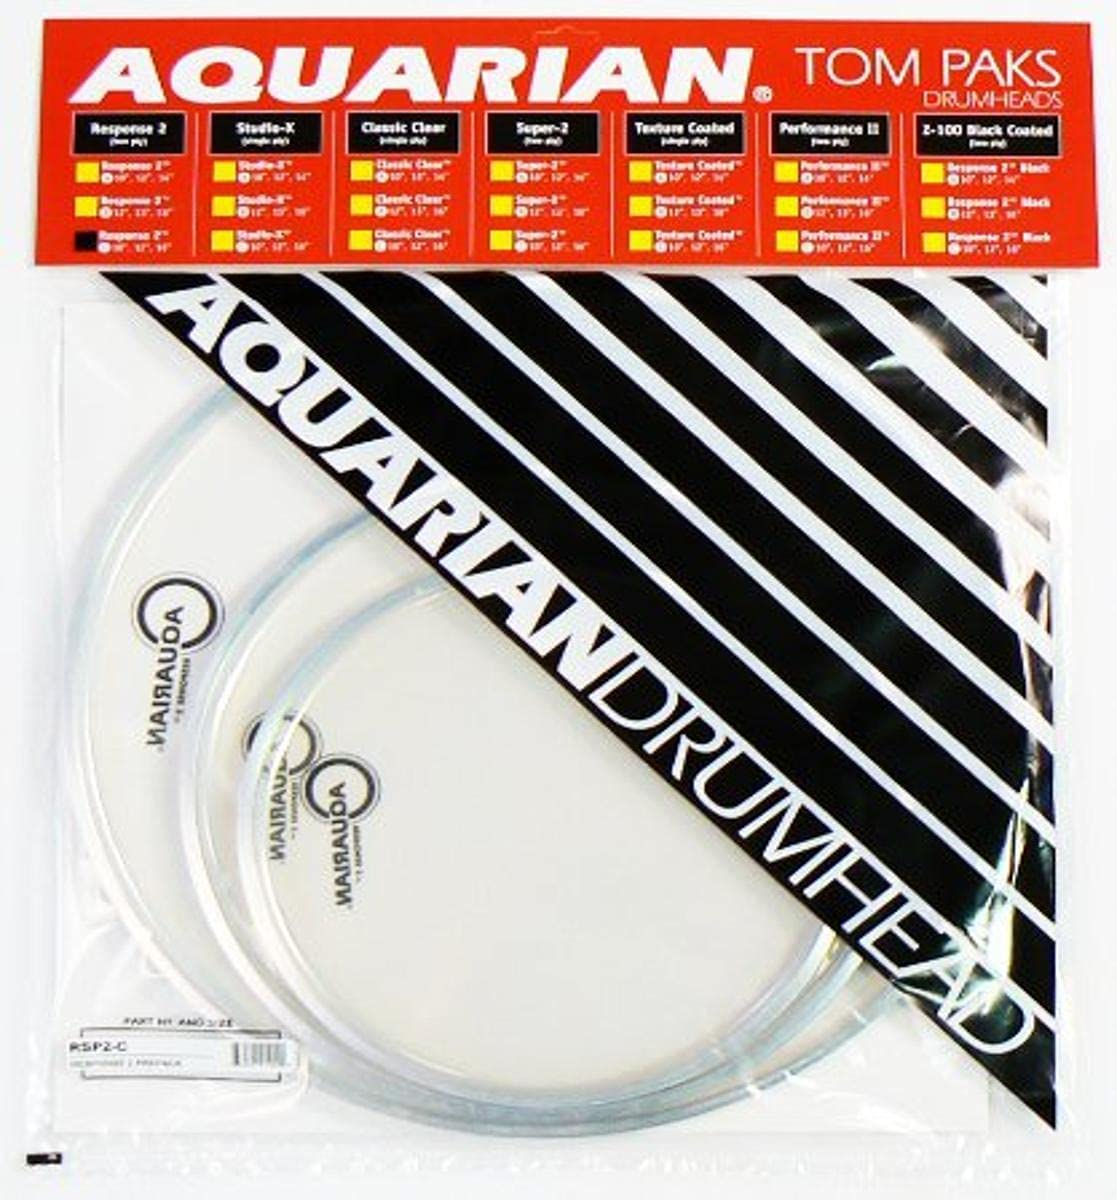 Aquarian Our 5 ☆ popular shop most popular Drumheads RSP2-C Response 2 16-inch 12 Tom 10 Pack